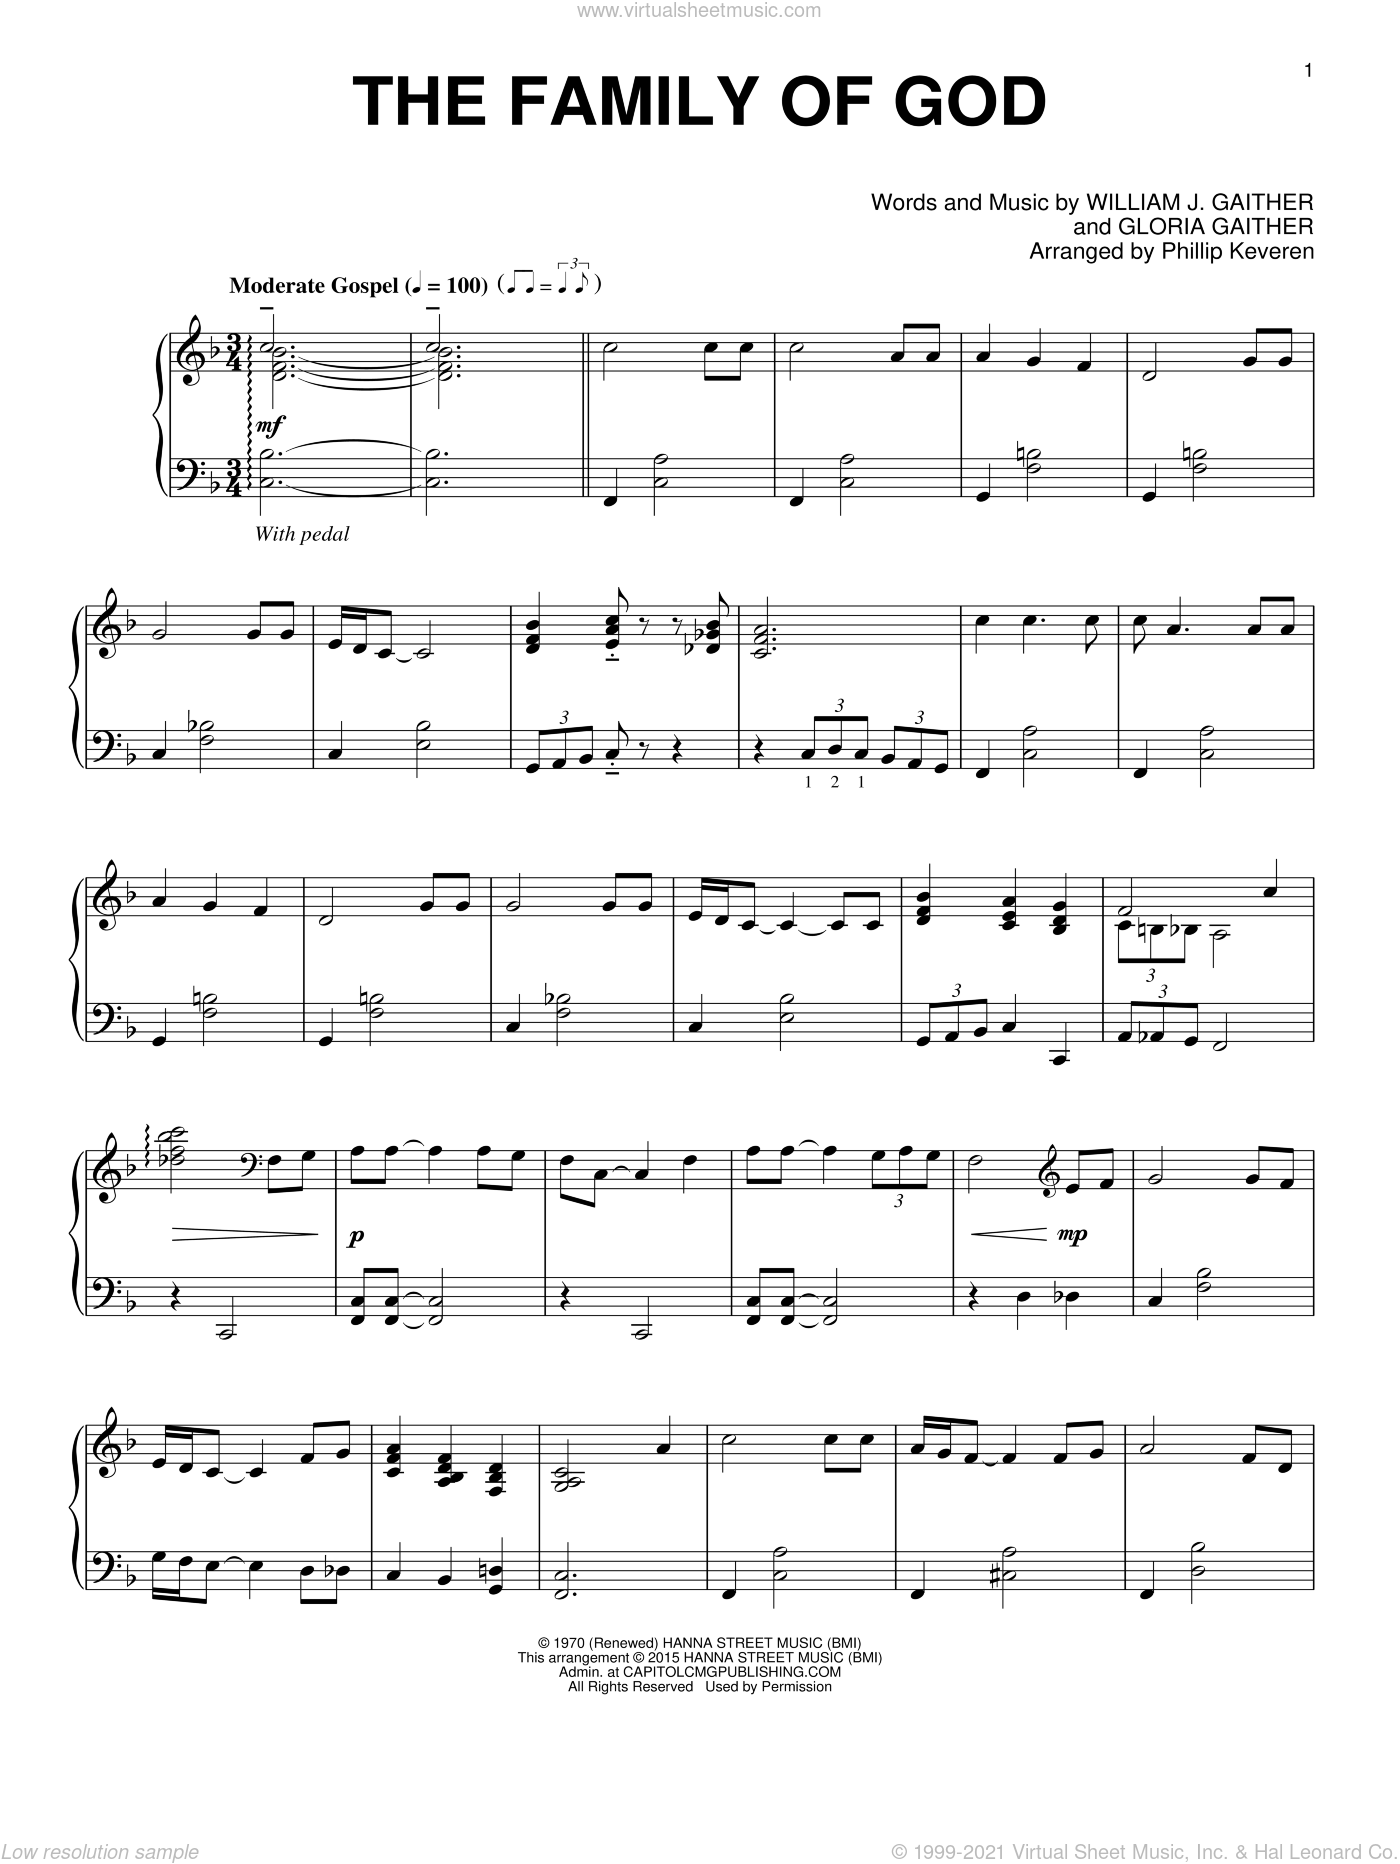 The Family Of God, (intermediate) sheet music for piano solo by Gloria Gaither, Phillip Keveren and William J. Gaither, intermediate skill level